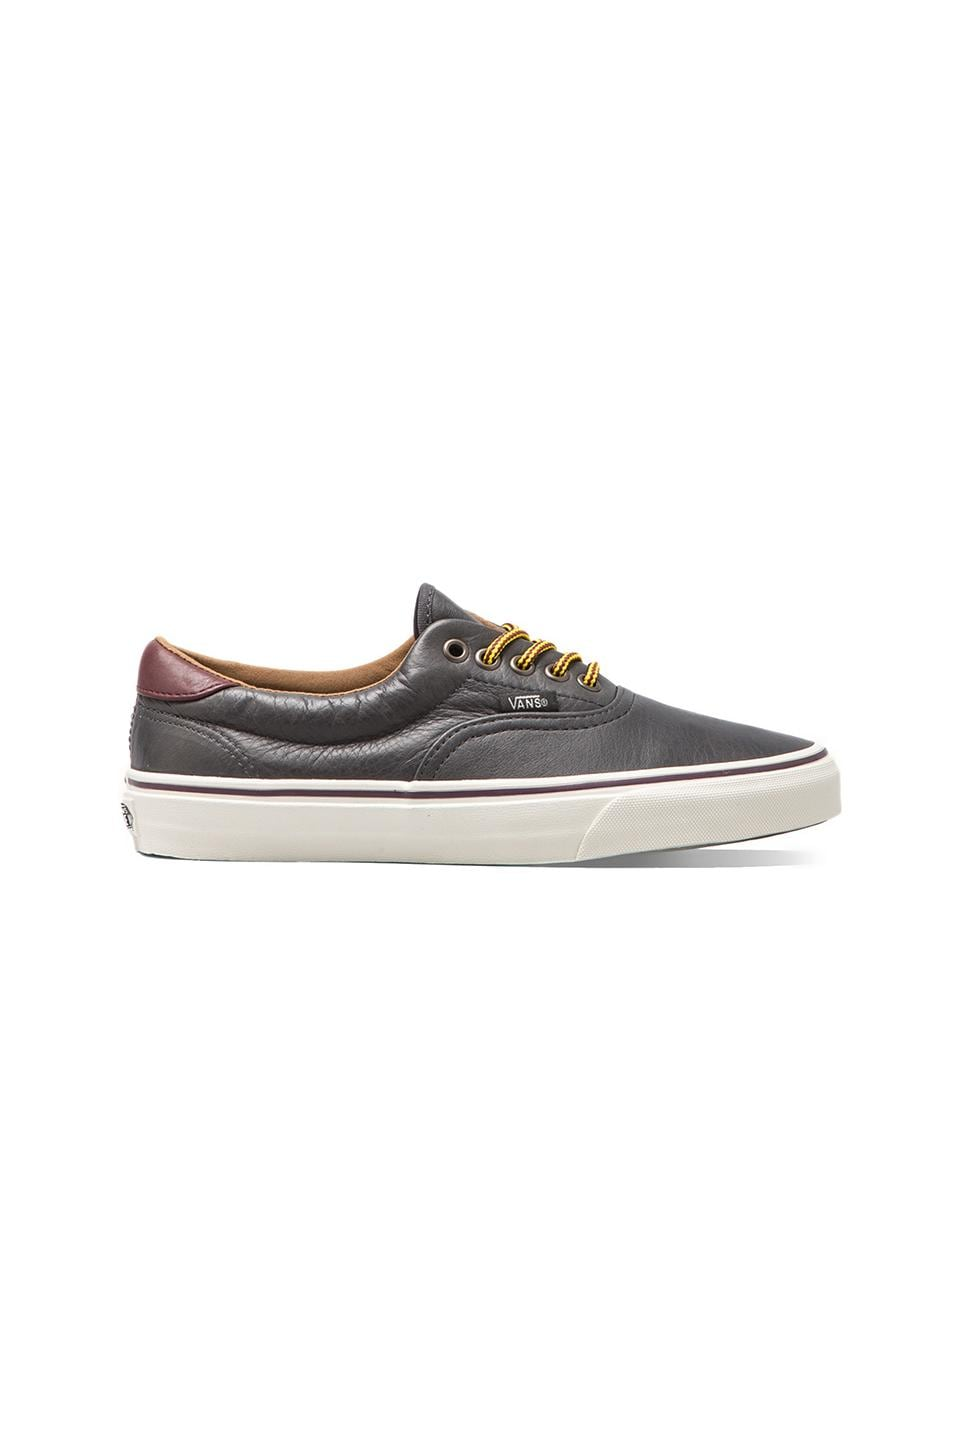 Vans California Era 59 in Dark Shadow